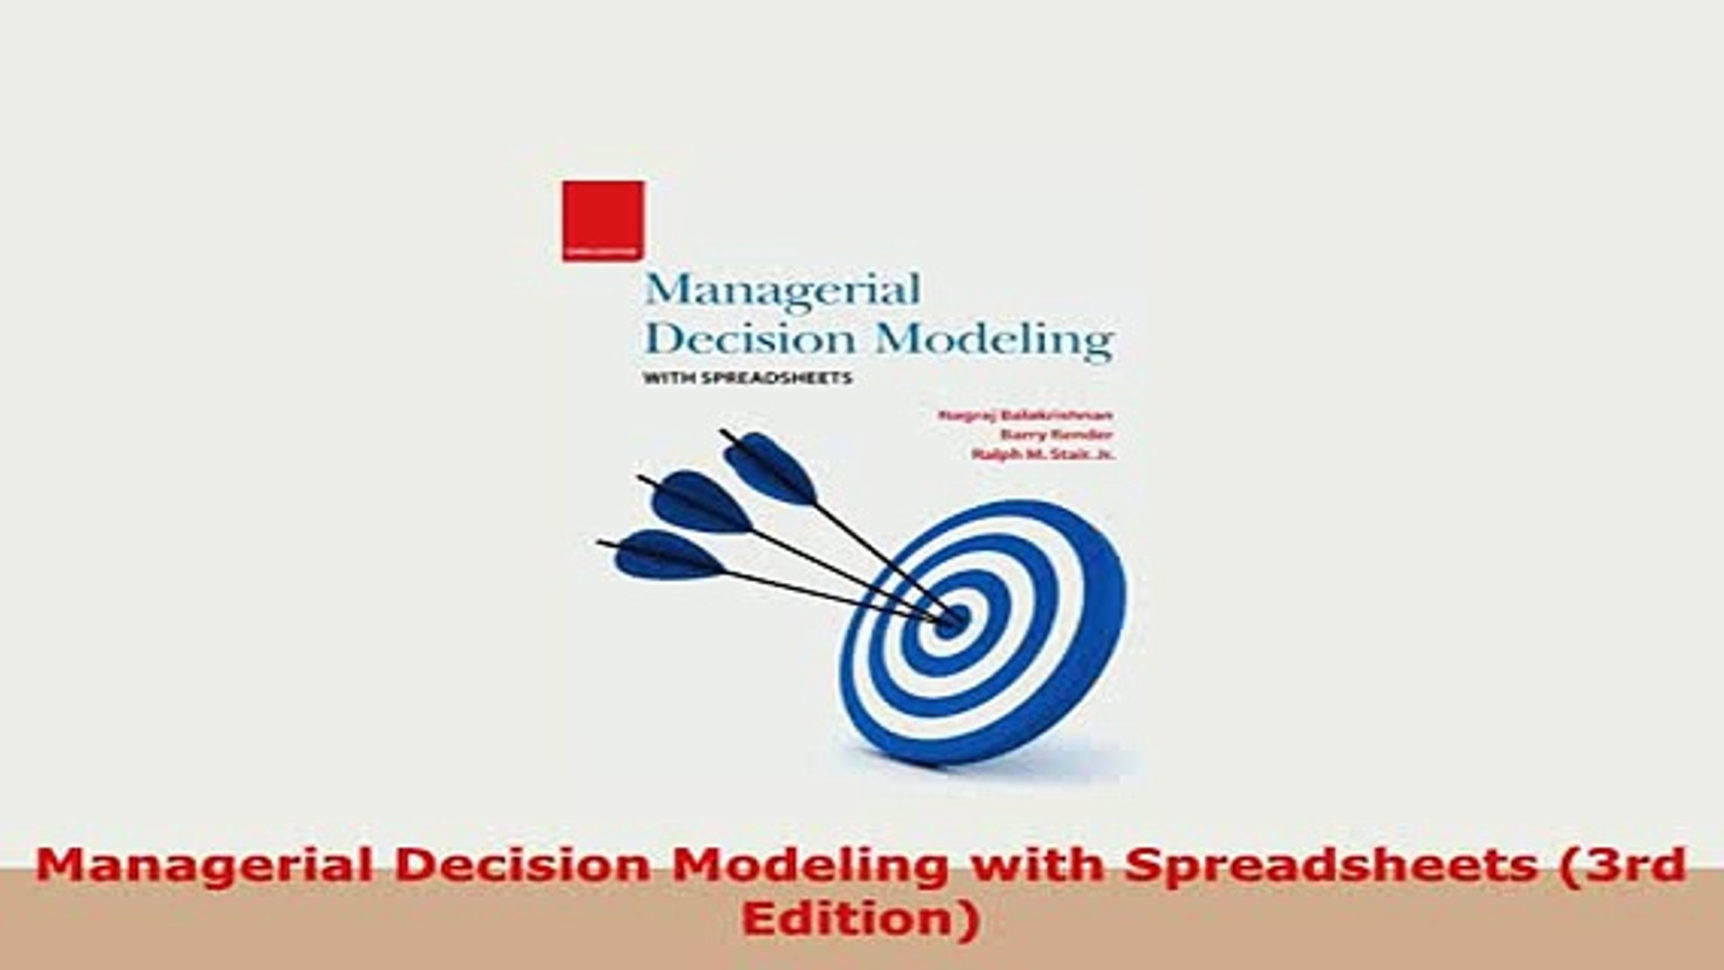 Managerial Decision Modeling With Spreadsheets 3Rd Edition In Pdf Managerial Decision Modeling With Spreadsheets 3Rd Edition Pdf